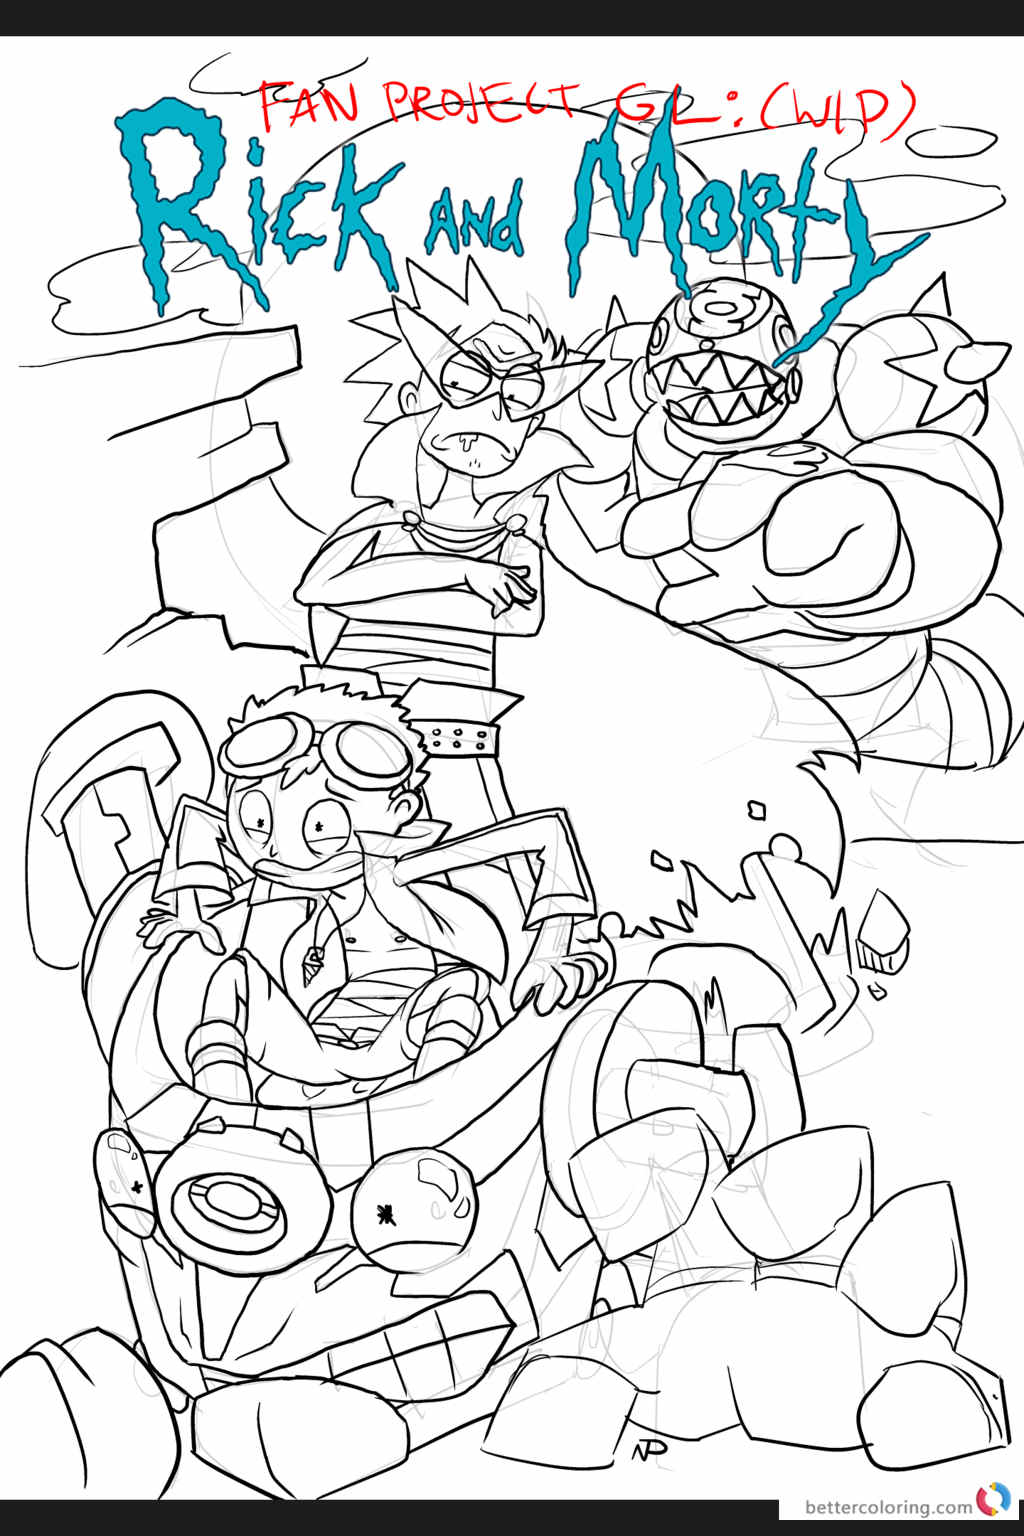 Rick And Morty Coloring Pages of Fan art By NPOLO Printable